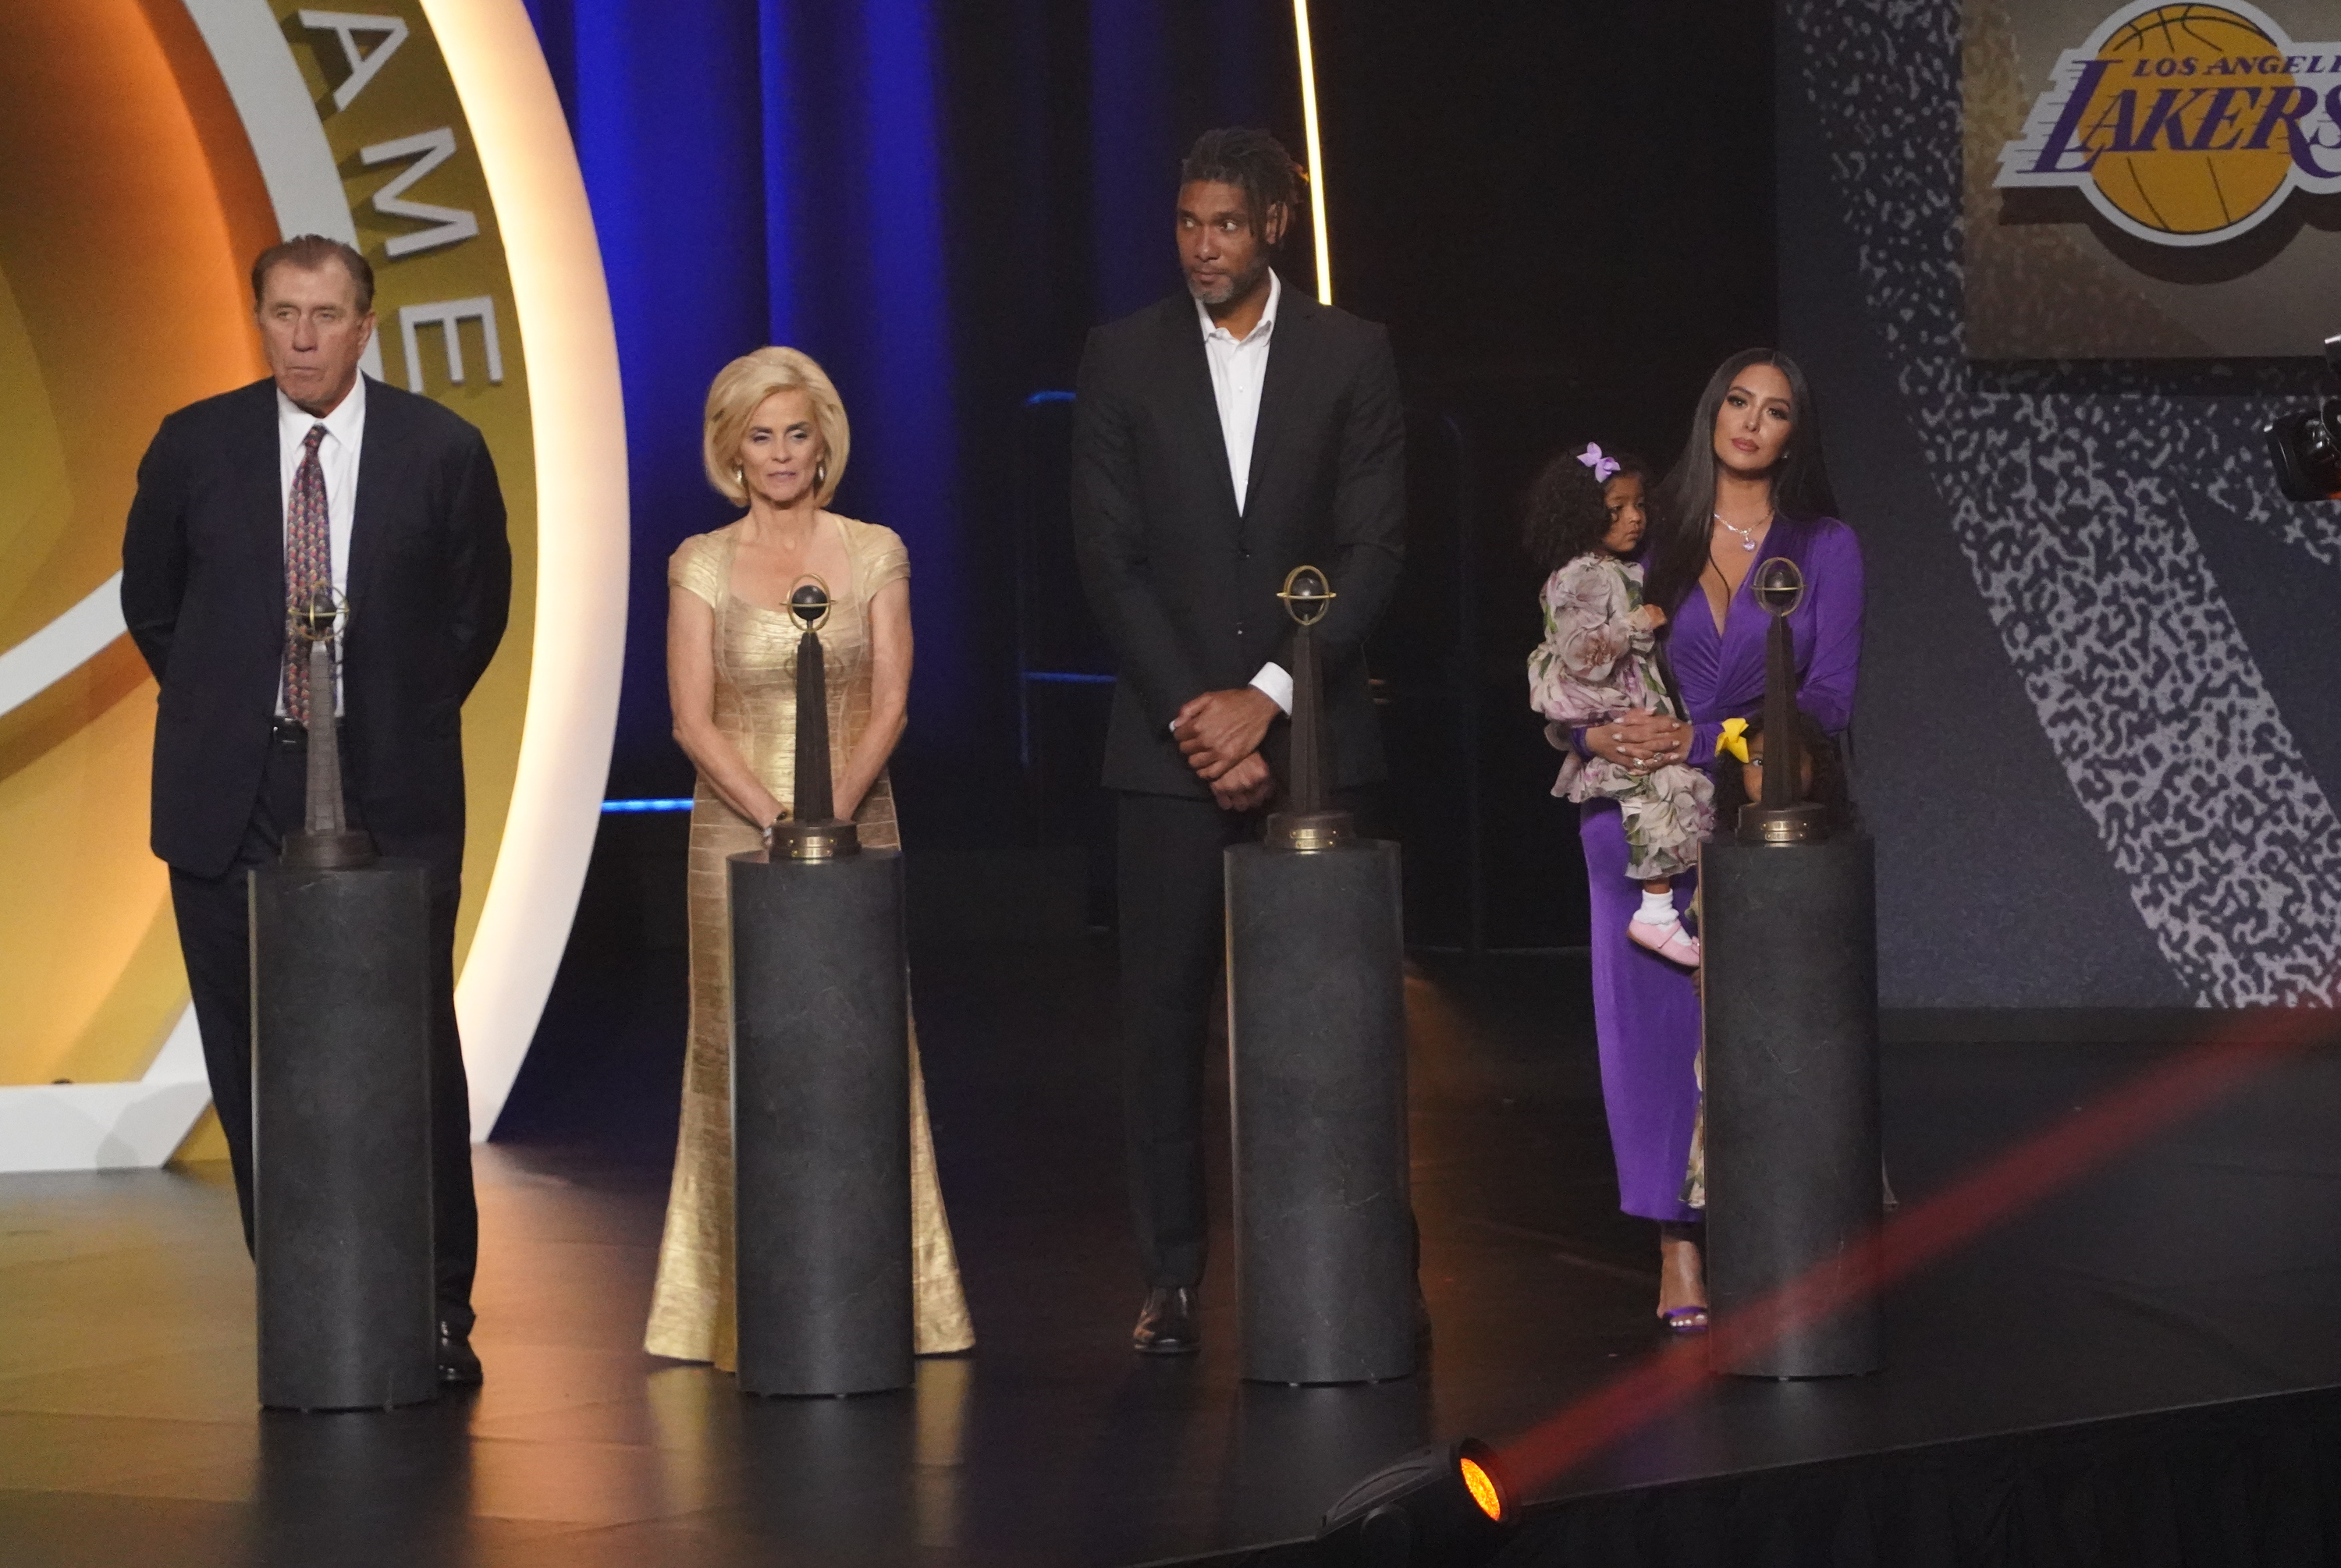 May 15, 2021; Uncasville, Connecticut, USA;  (L to R) Class of 2020 inductees Rudy Tomjanovich, Kim Mulkey, Tim Duncan and Vanessa Bryant, wife of the late Kobe Bryant on stage after the Naismith Memorial Basketball Hall of Fame Enshrinement at Mohegan Sun Arena. Mandatory Credit: David Butler II-USA TODAY Sports